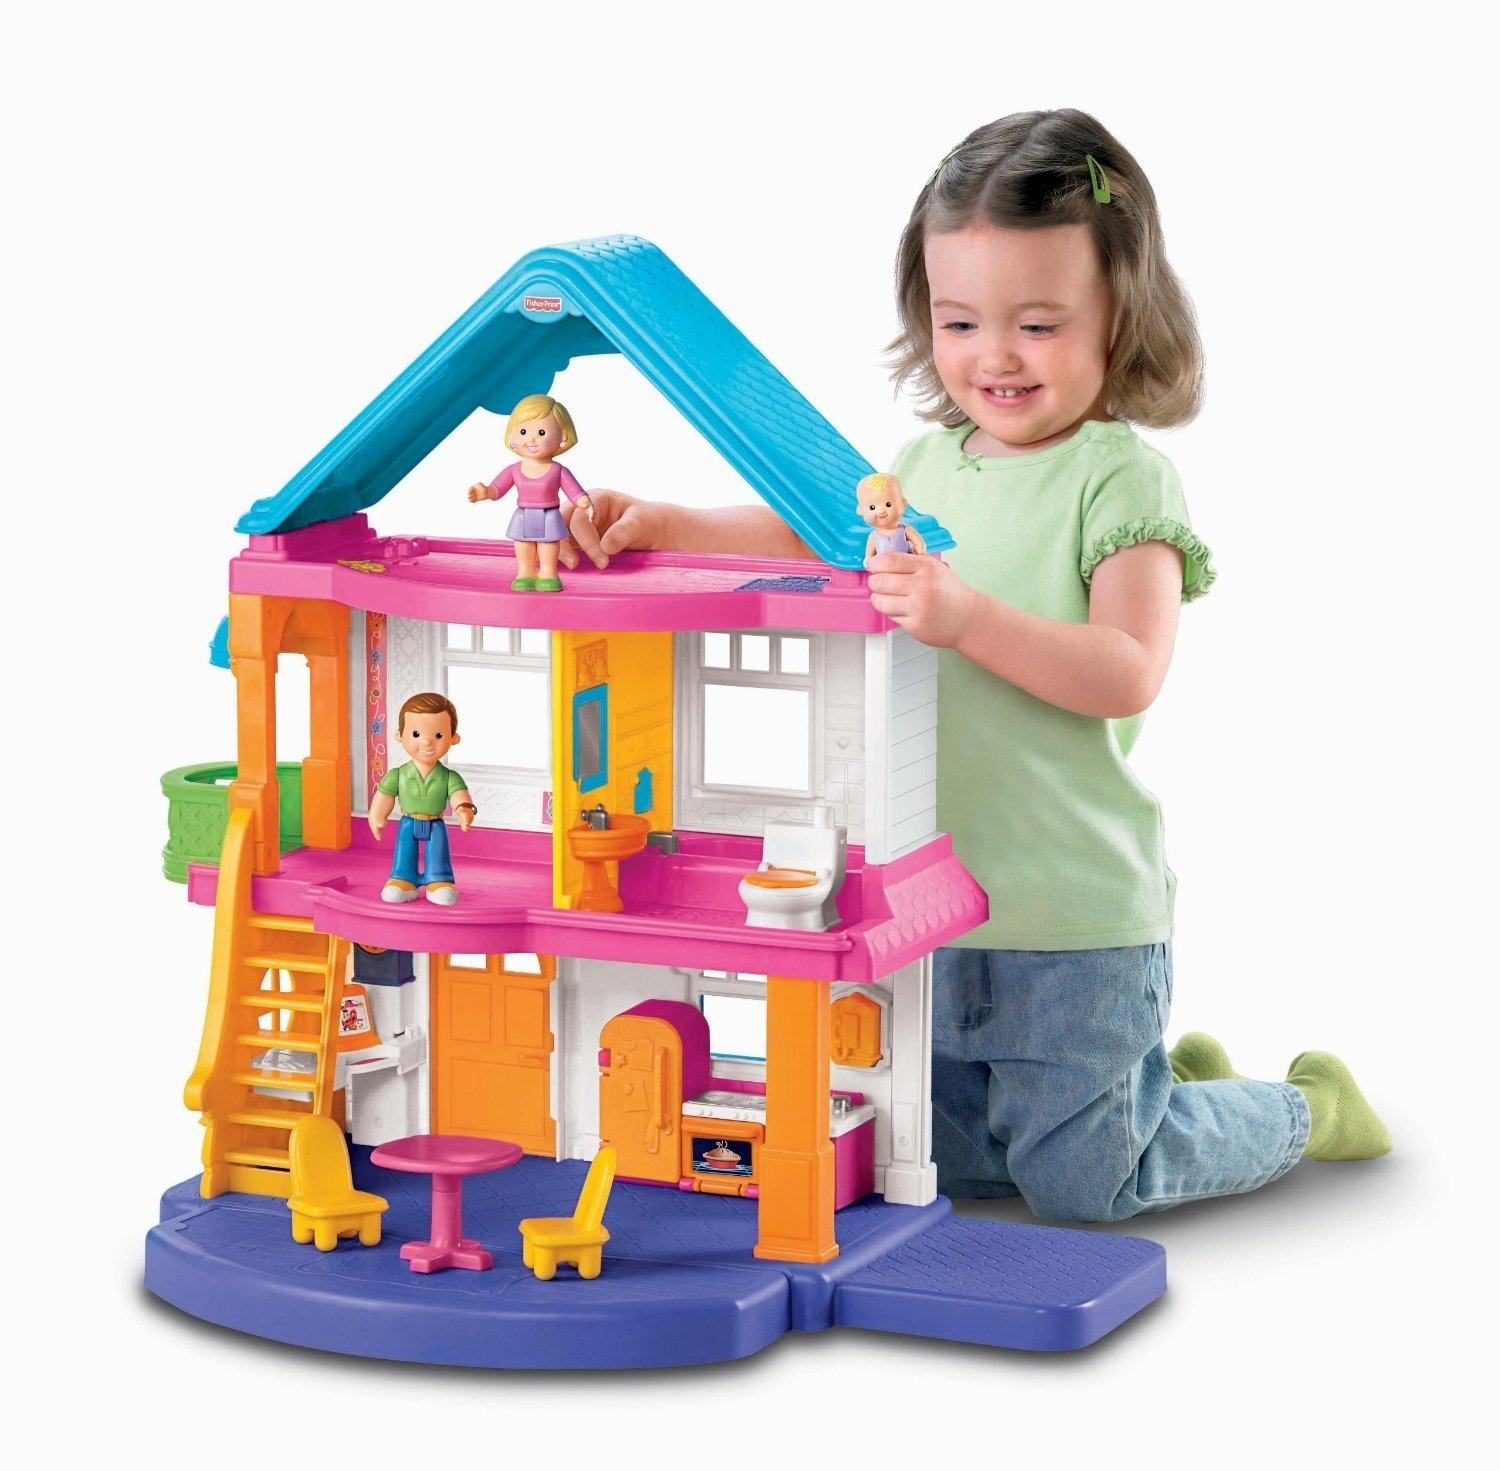 10 Lovely Gift Ideas For 1 Year Old Baby Girl best gift ideas for three year old girls a gift guide 8 2020